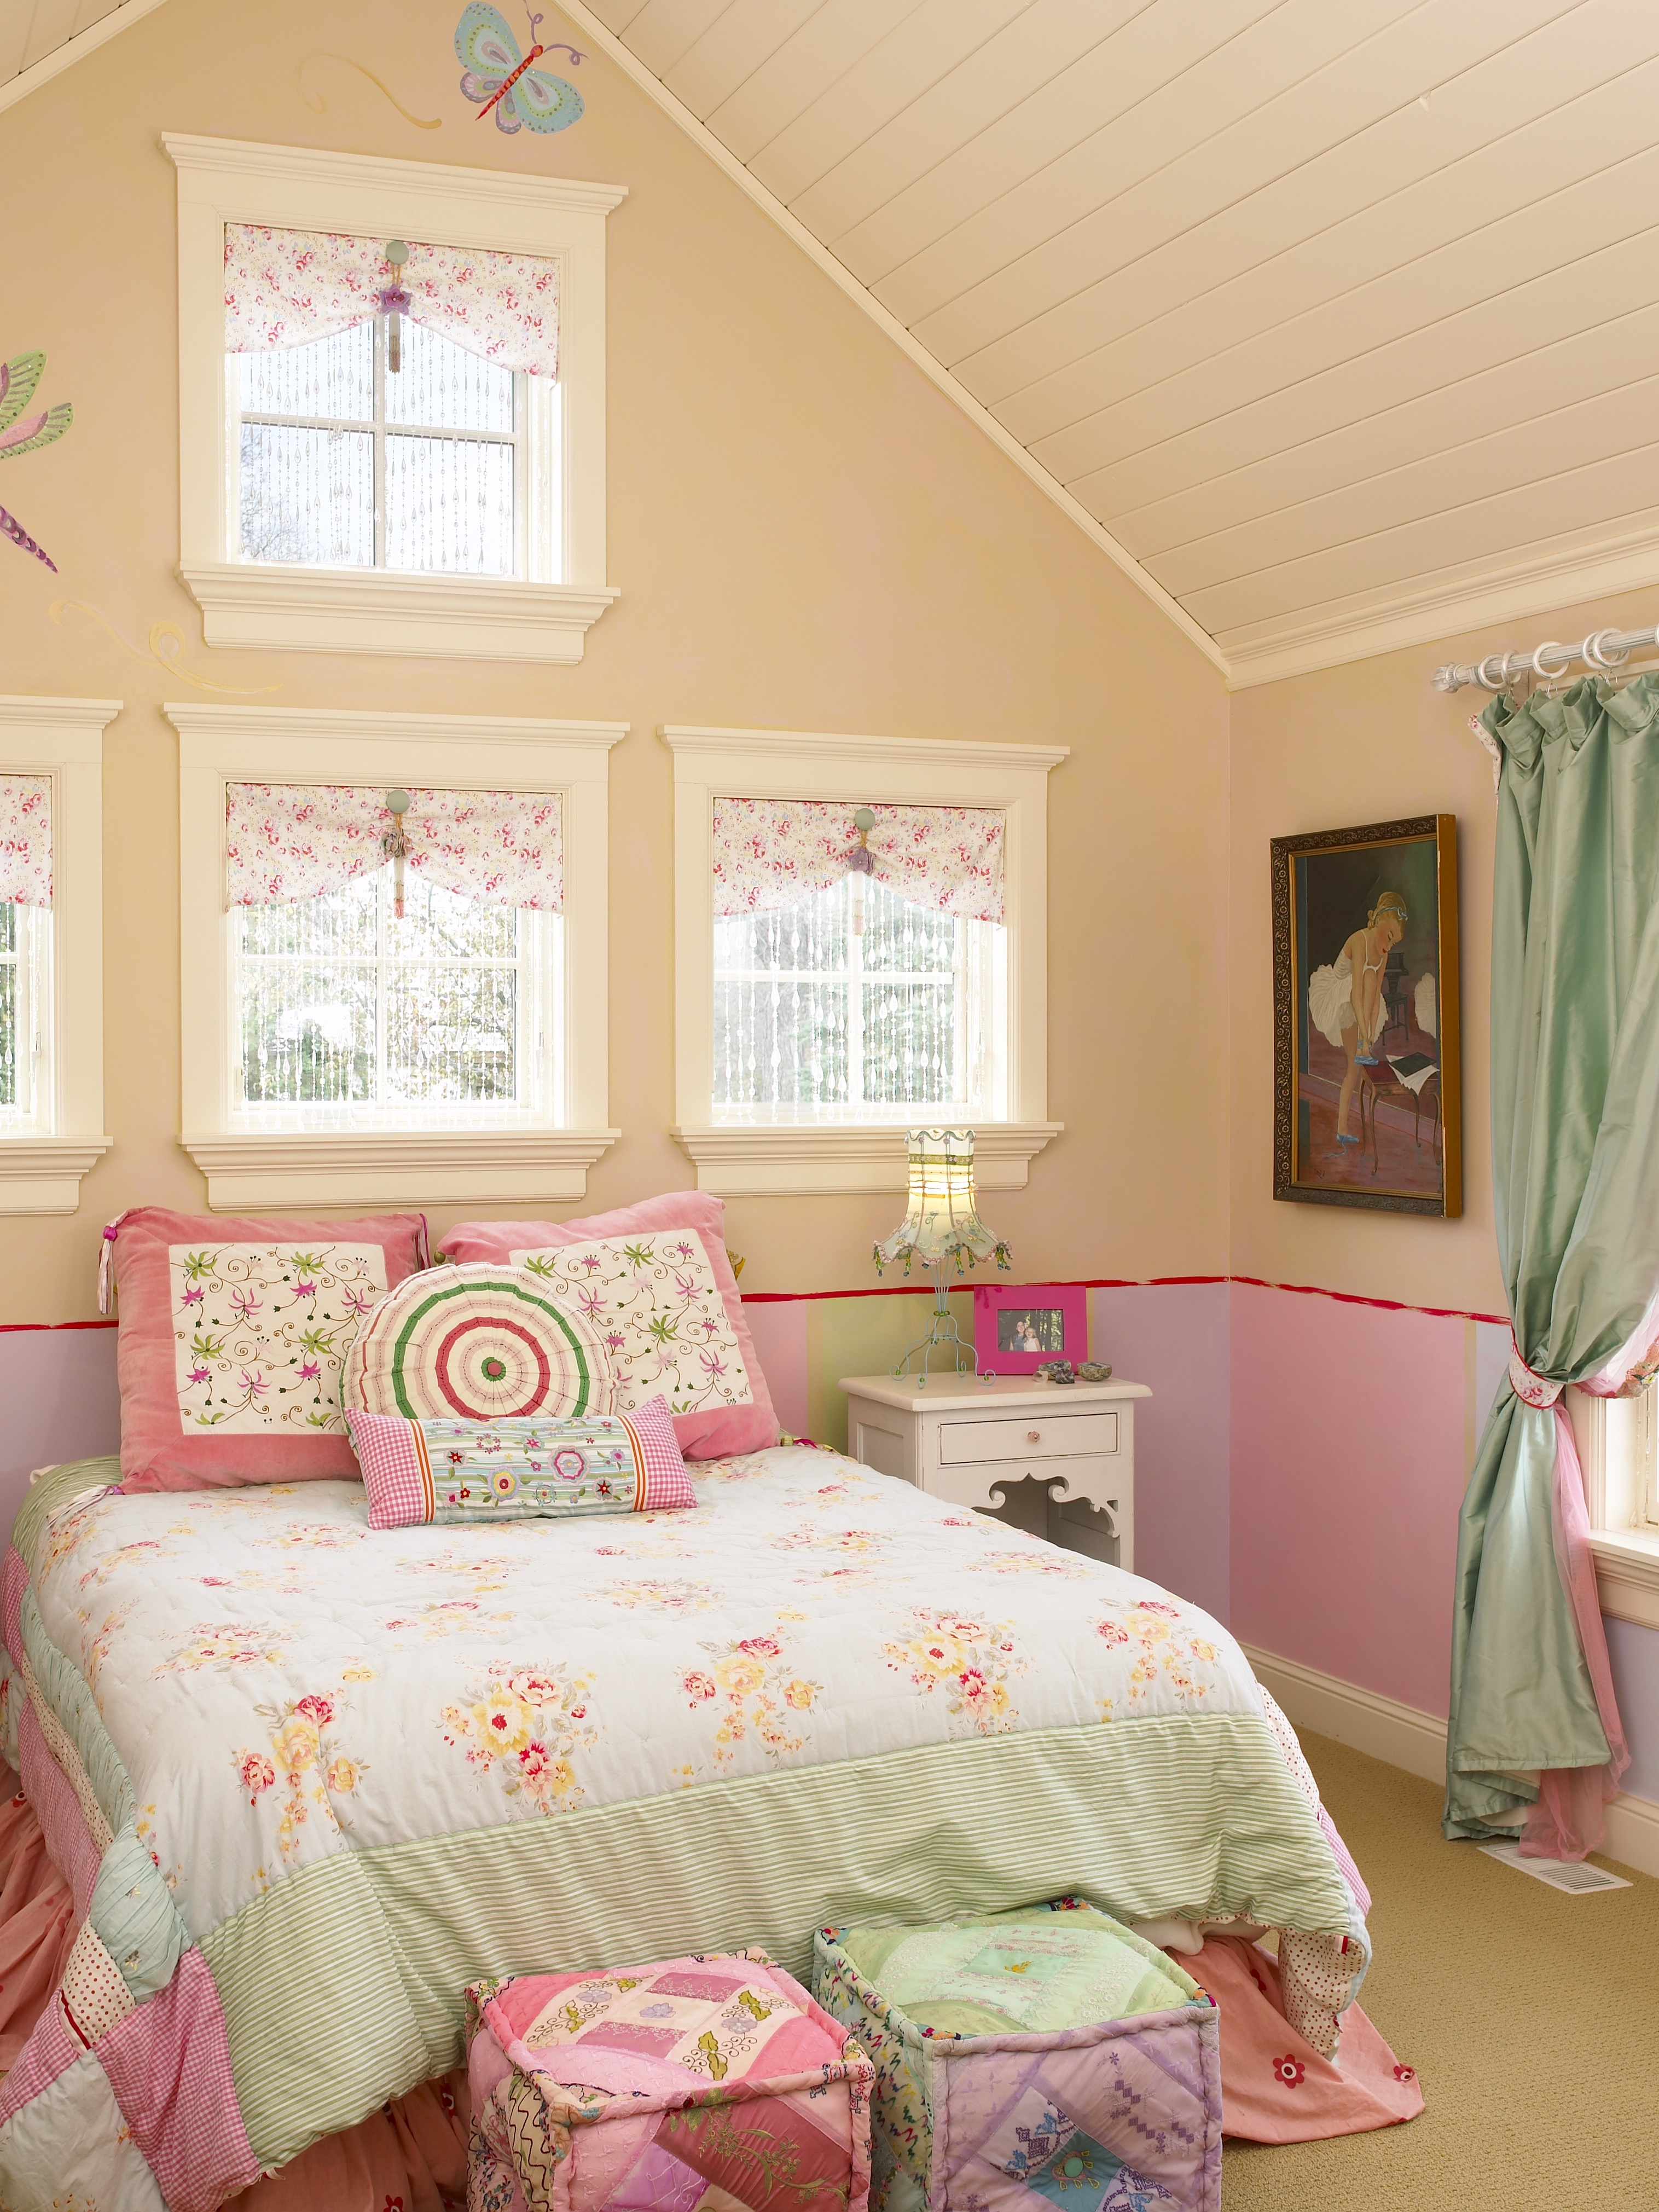 Traditional Attic Remodel For Children Bedroom For Girls (Image 31 of 35)